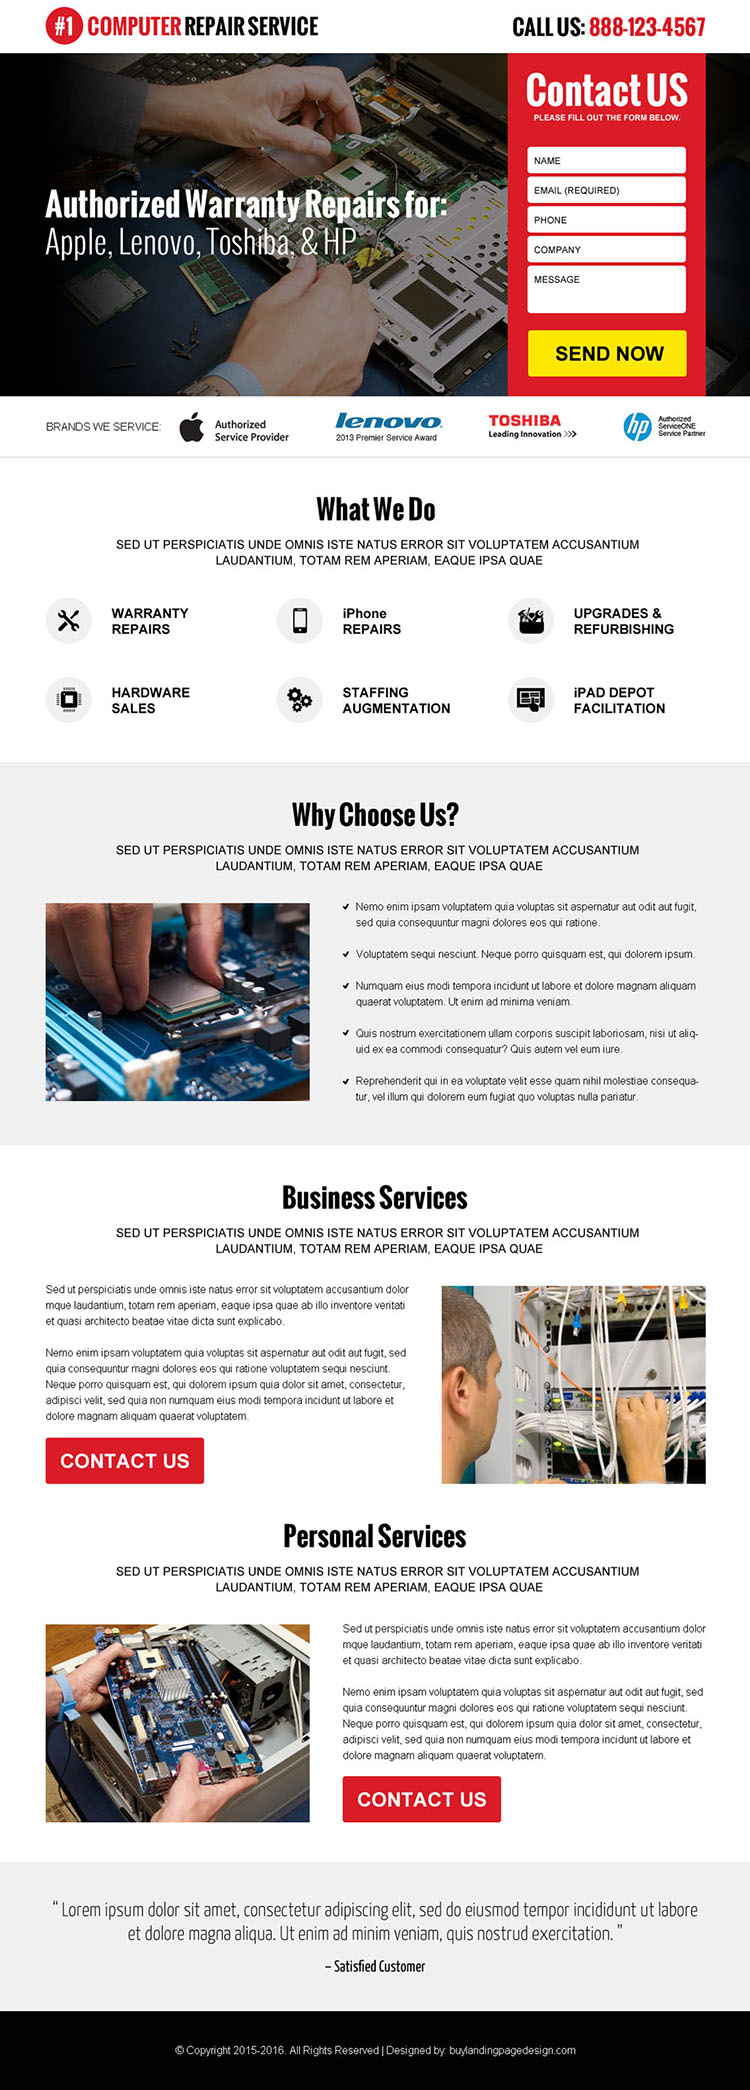 computer repair service lead generating landing page design